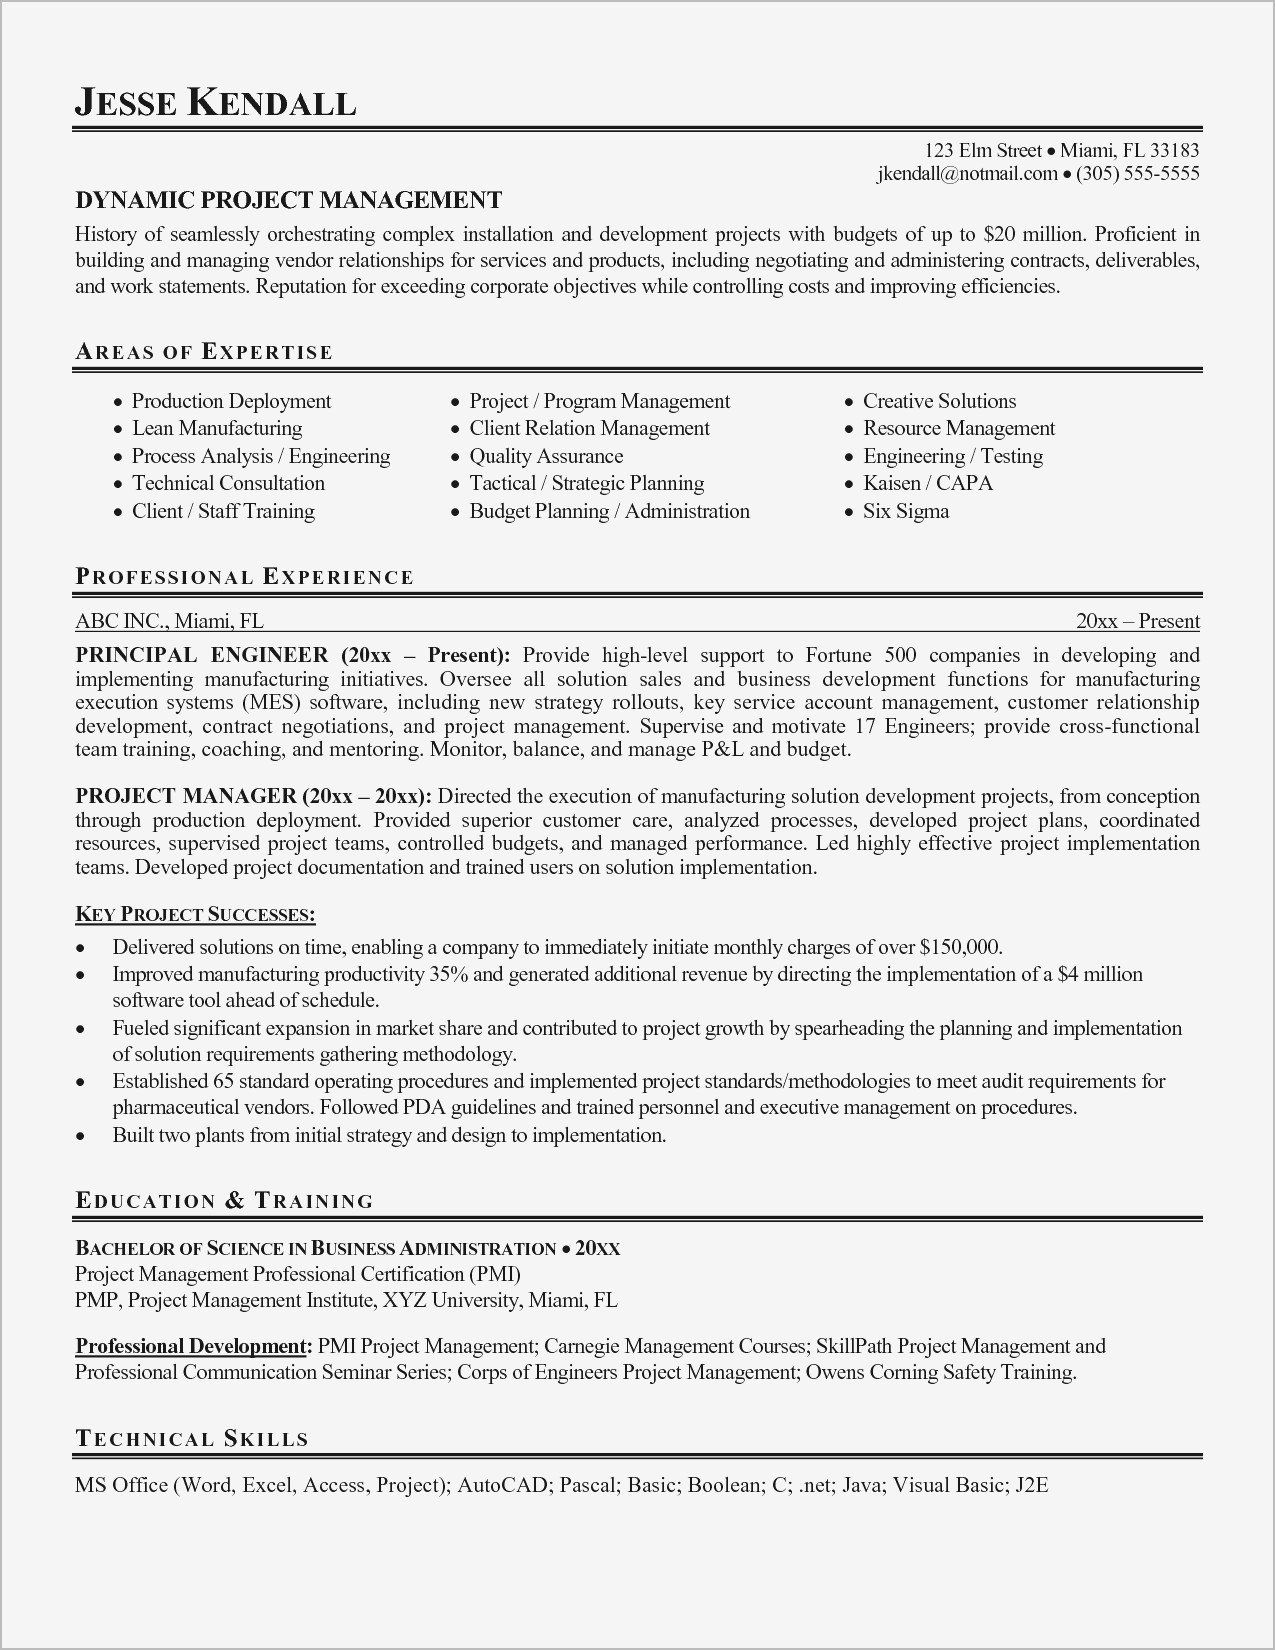 Sample Project Manager Resume Luxury Project Manager Resume Template Sample Facilit Project Manager Resume Resume Objective Examples Resume Objective Statement